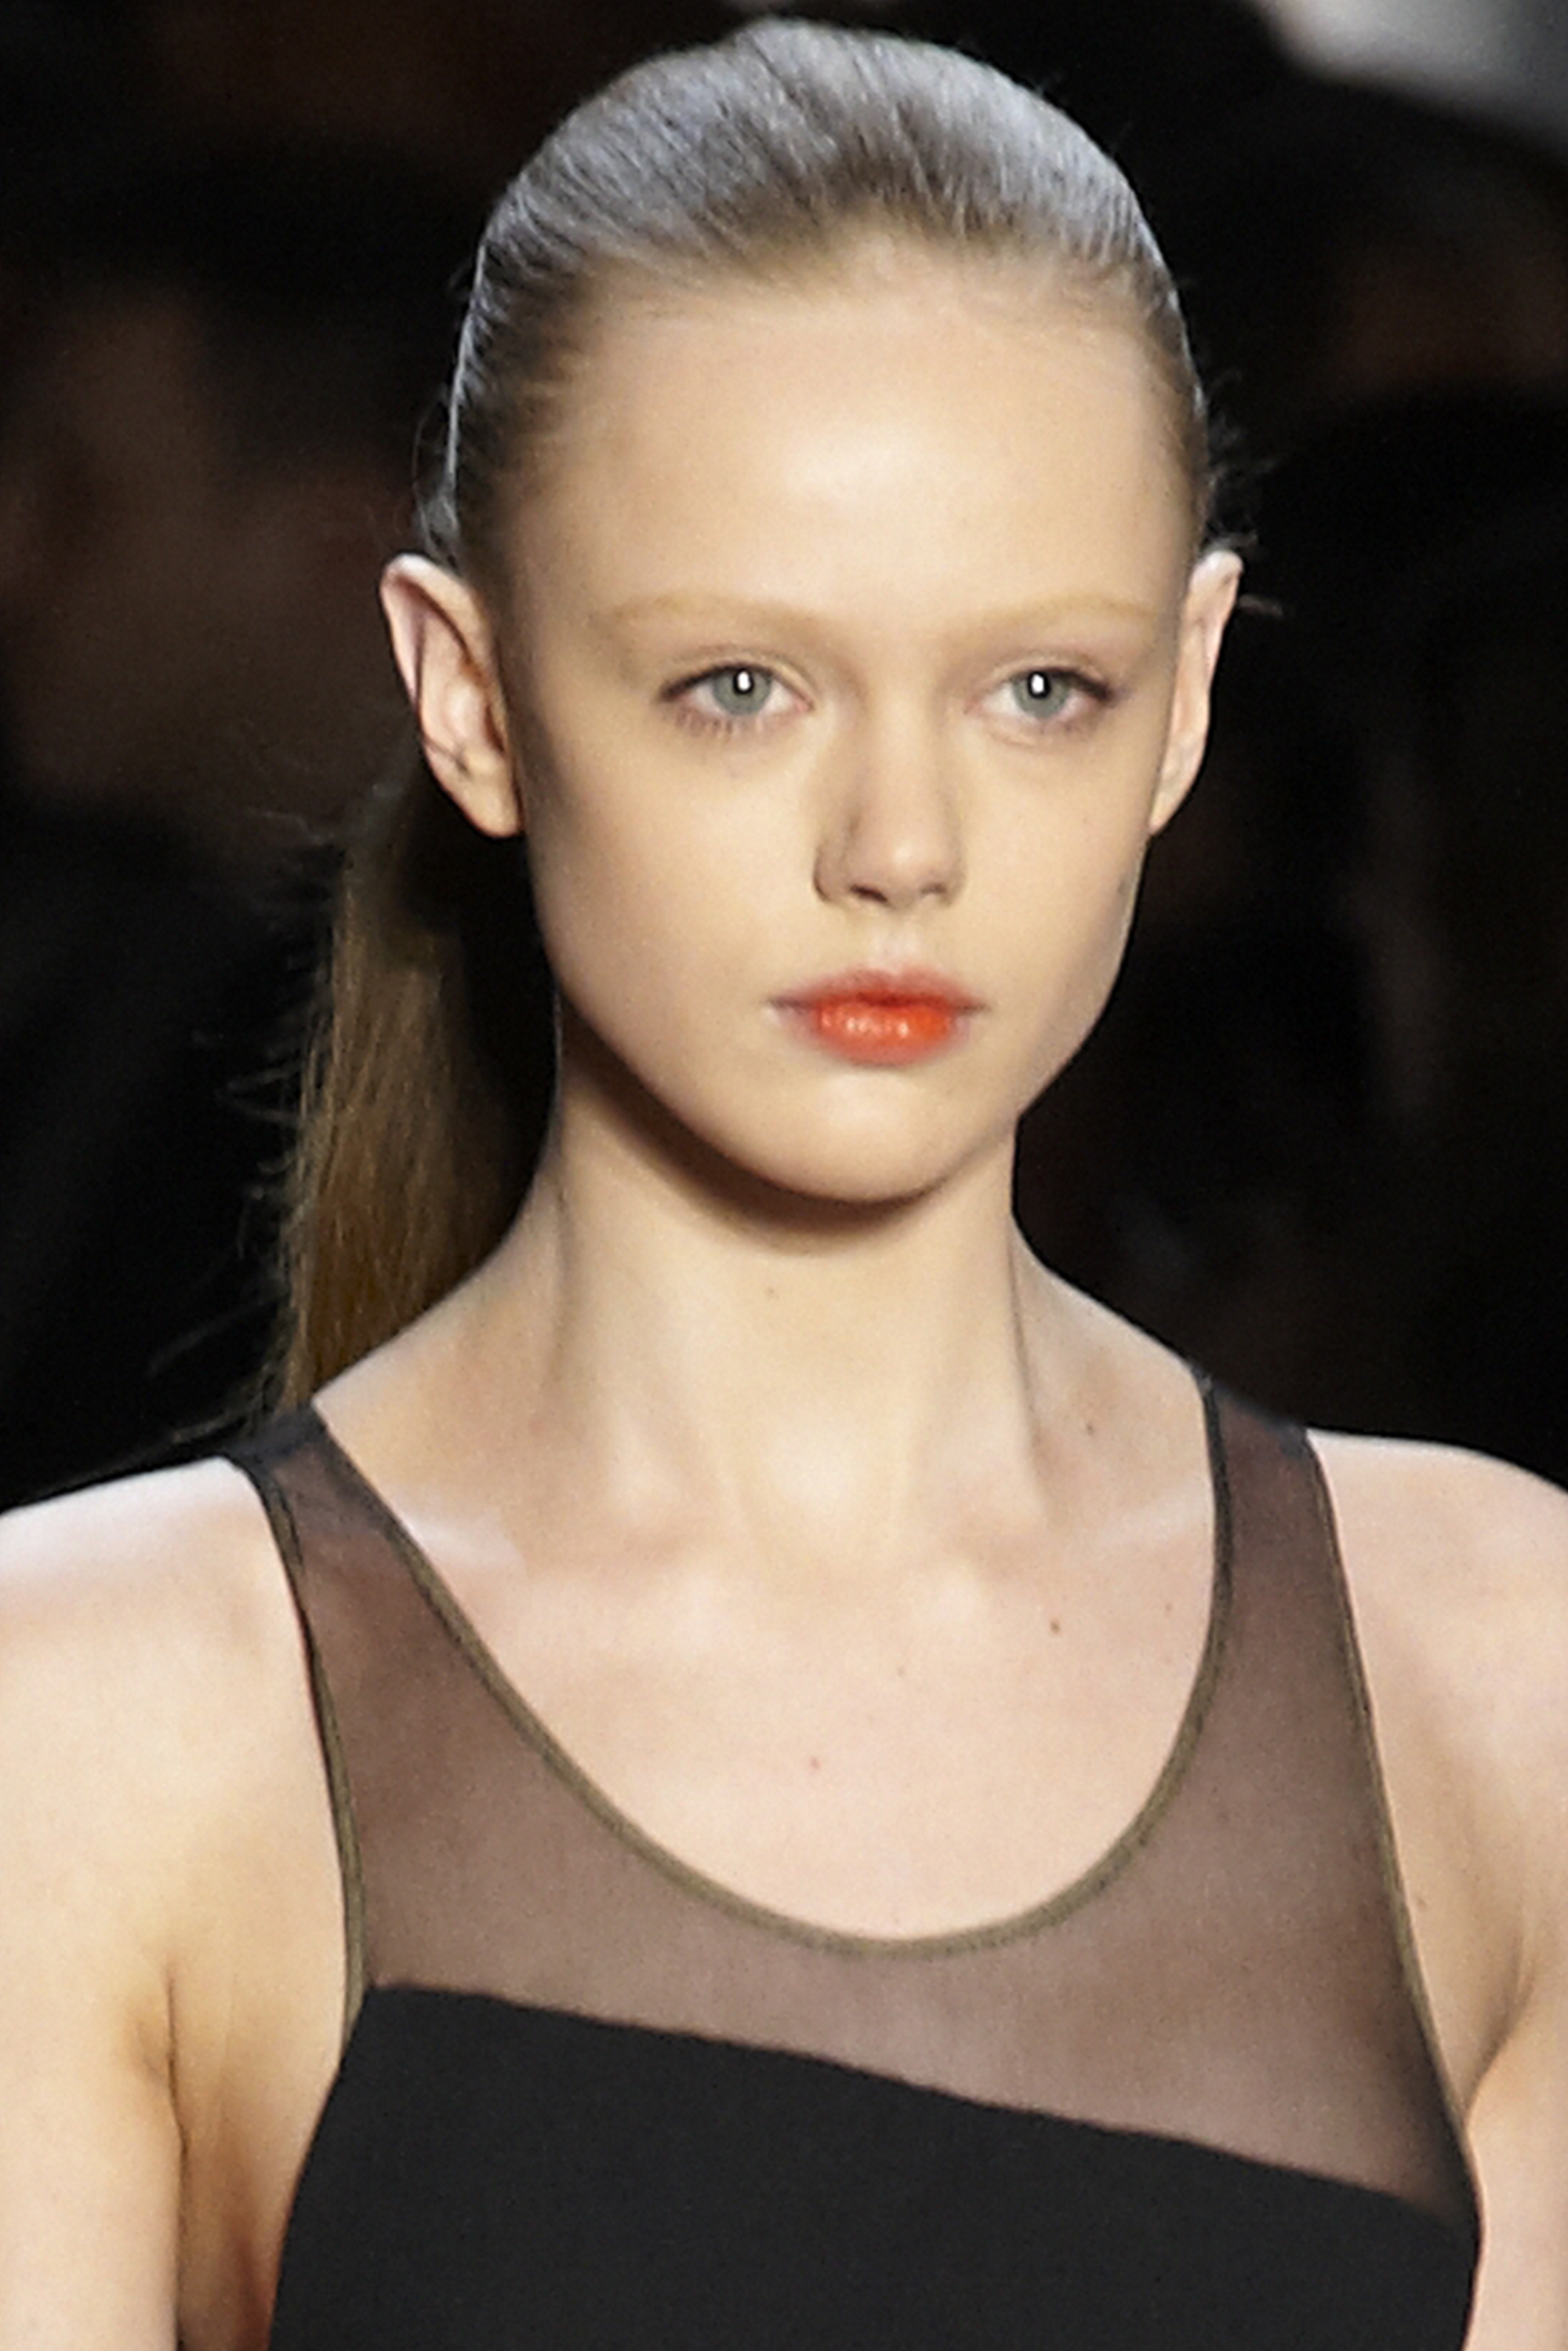 The 27-year old daughter of father (?) and mother(?) Frida Gustavsson in 2021 photo. Frida Gustavsson earned a  million dollar salary - leaving the net worth at 1 million in 2021